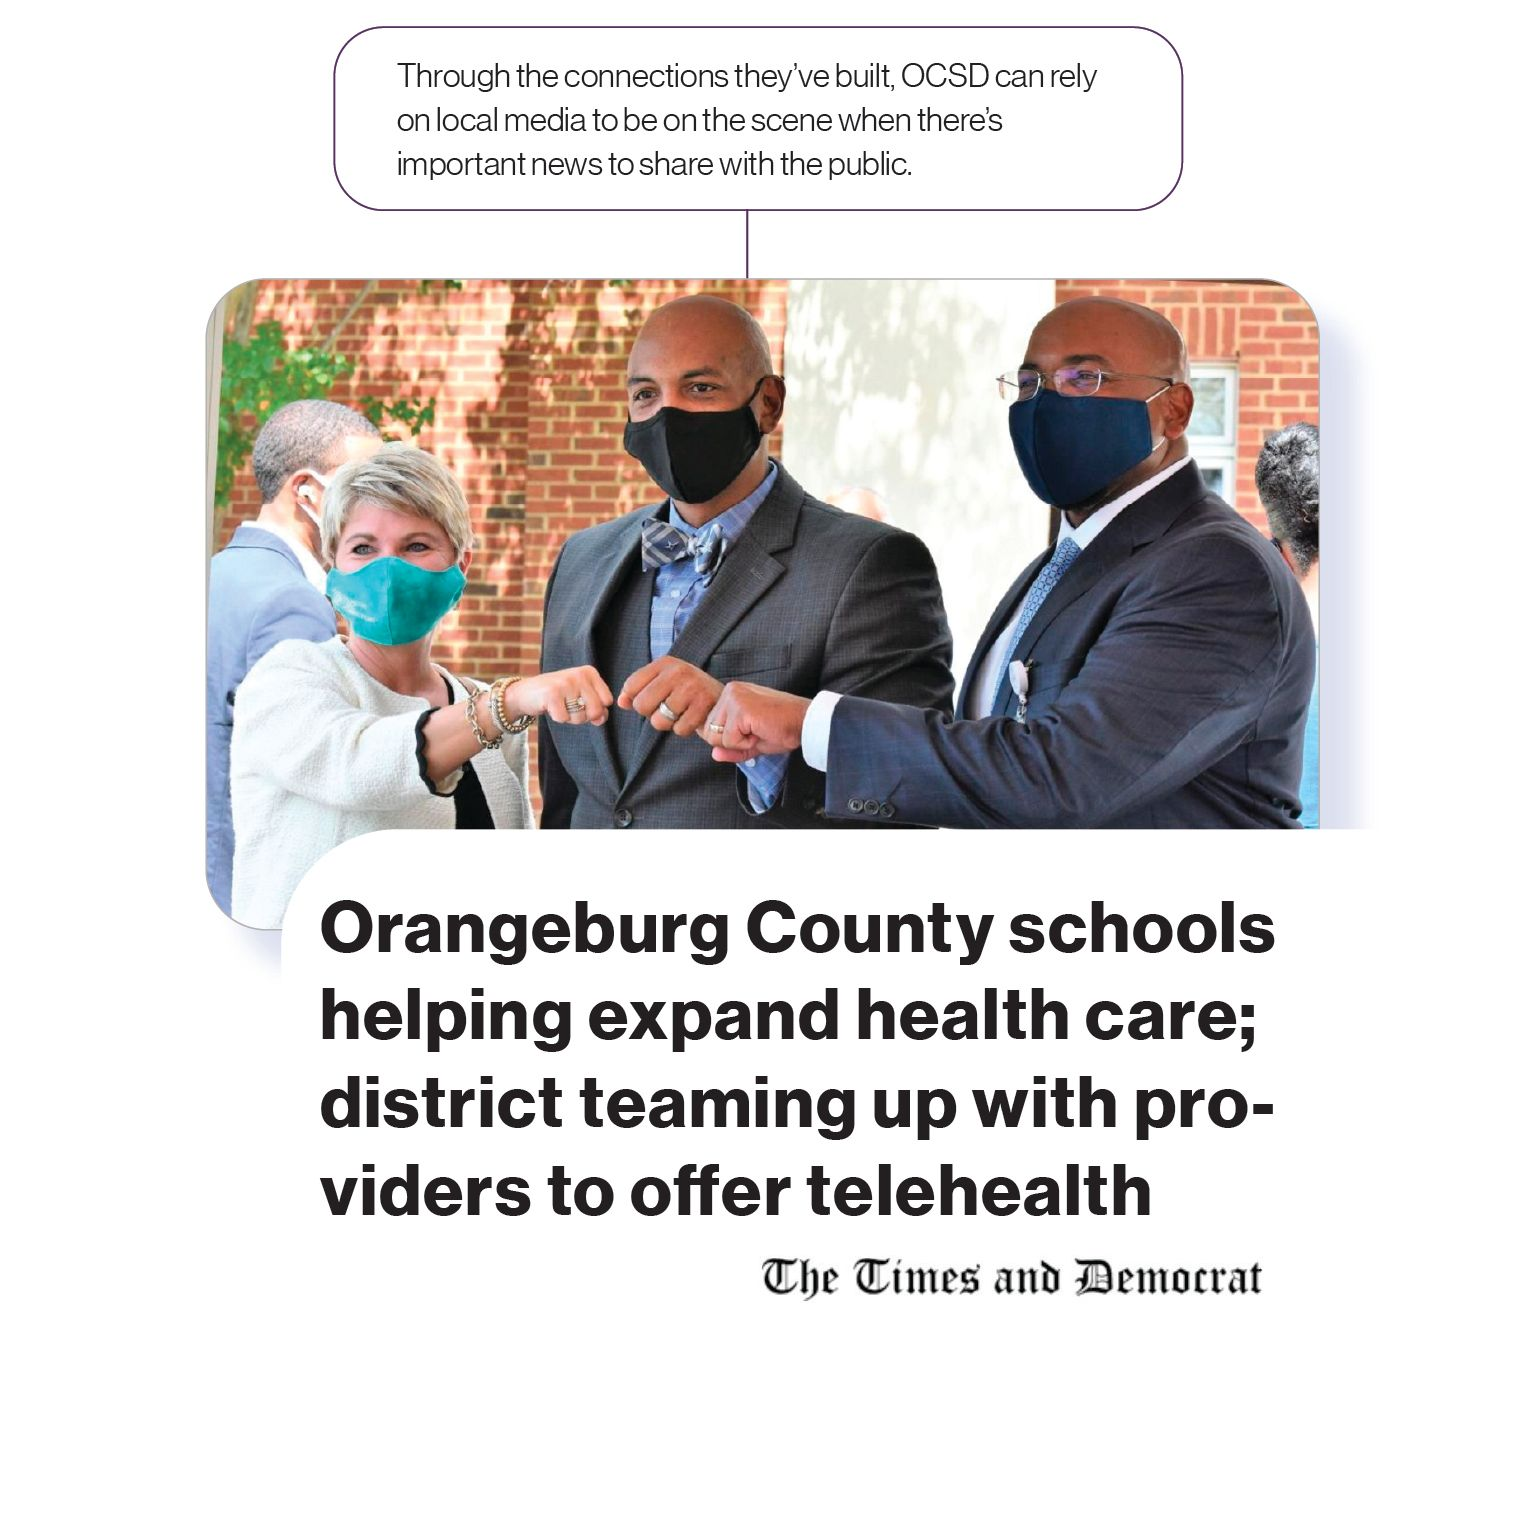 Image: A local newspaper story with the headline,'Orangeburg County schools helping expand health care; district teaming up with providers to offer telehealth', with SchoolCEO commentary, 'Through the connections they've built, OCSD can rely on local media to be on the scene when there's important news to share with the public.'